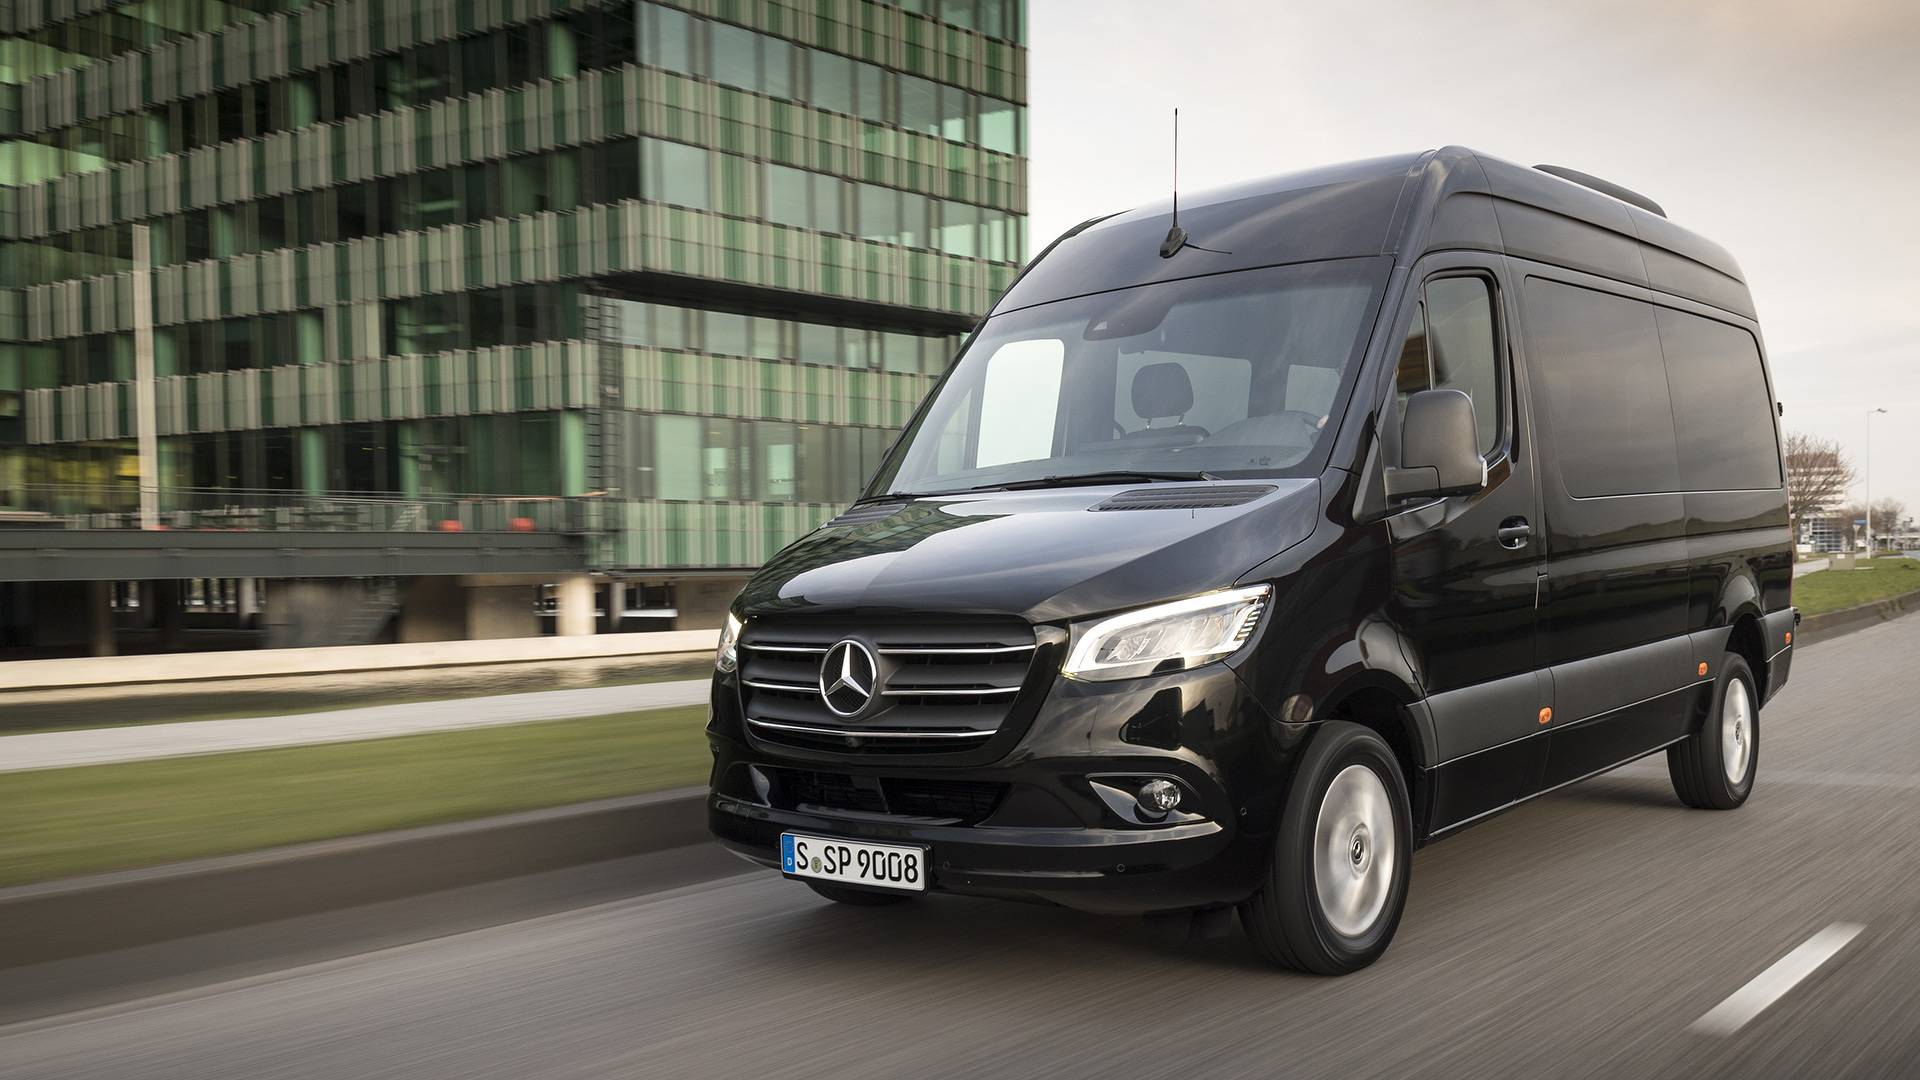 The 10 Best Mercedes-Benz Sprinter Models of All-Time